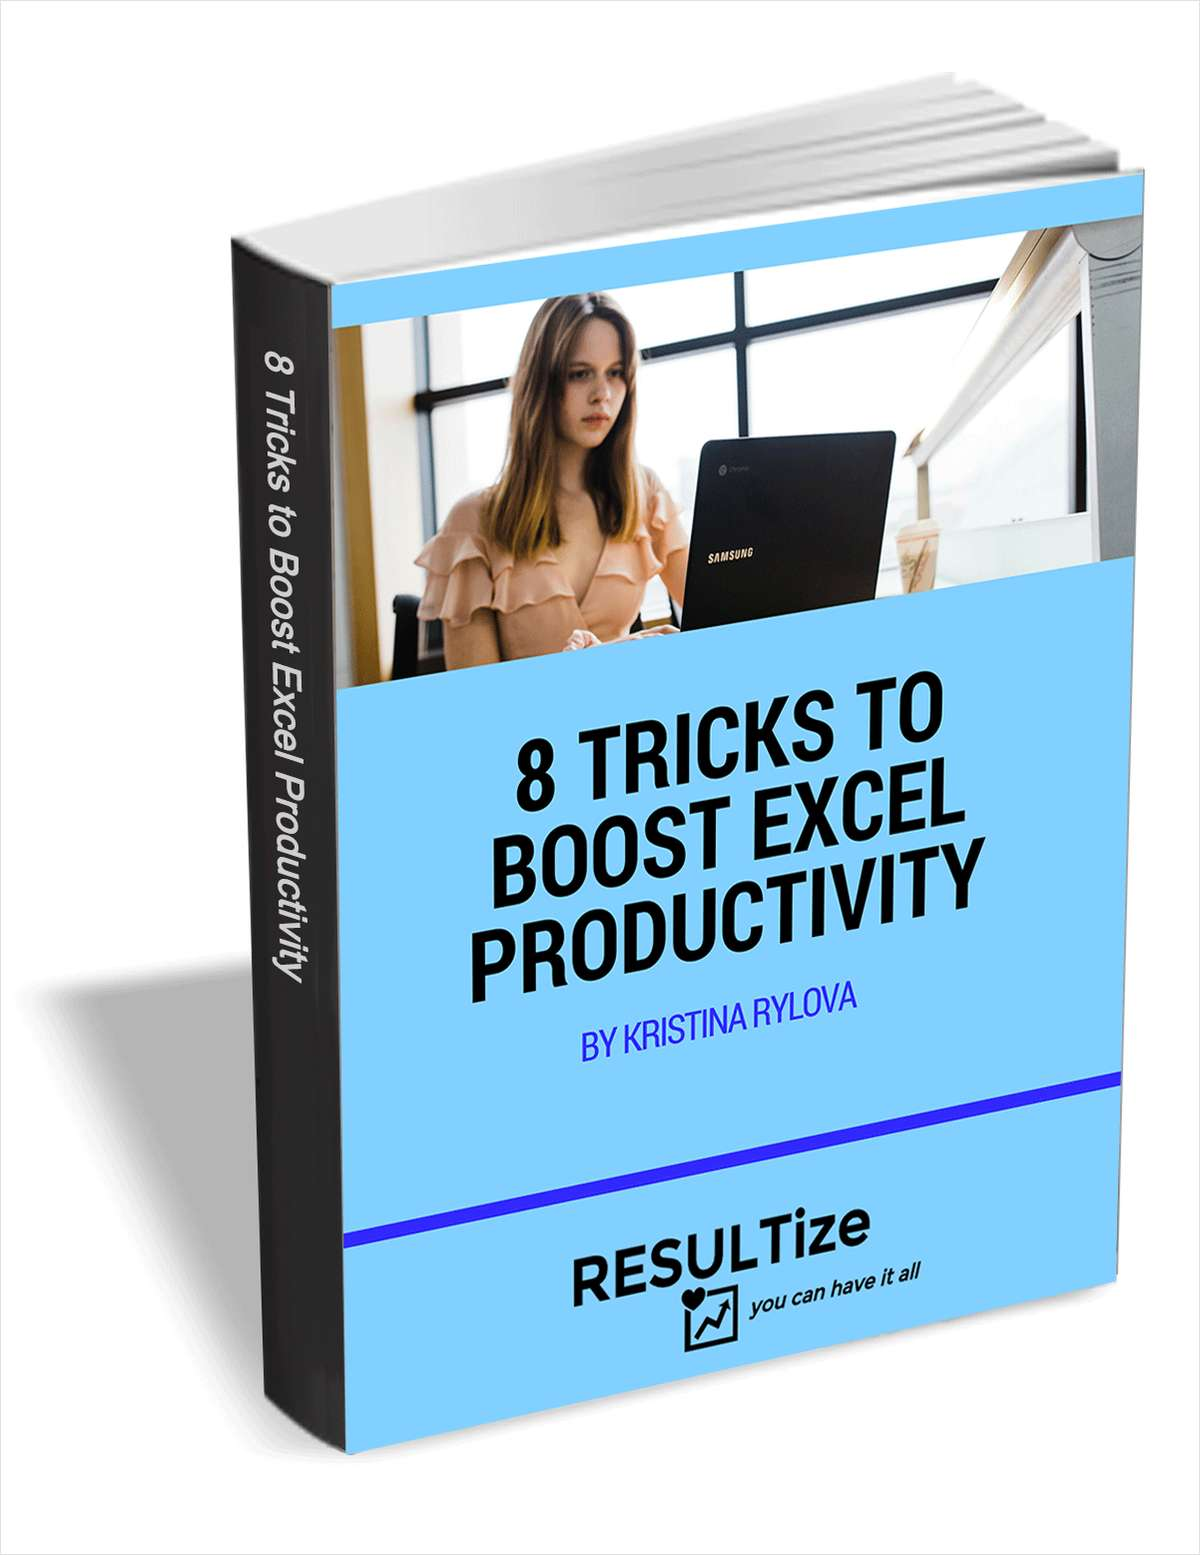 8 Tricks to Boost Excel Productivity